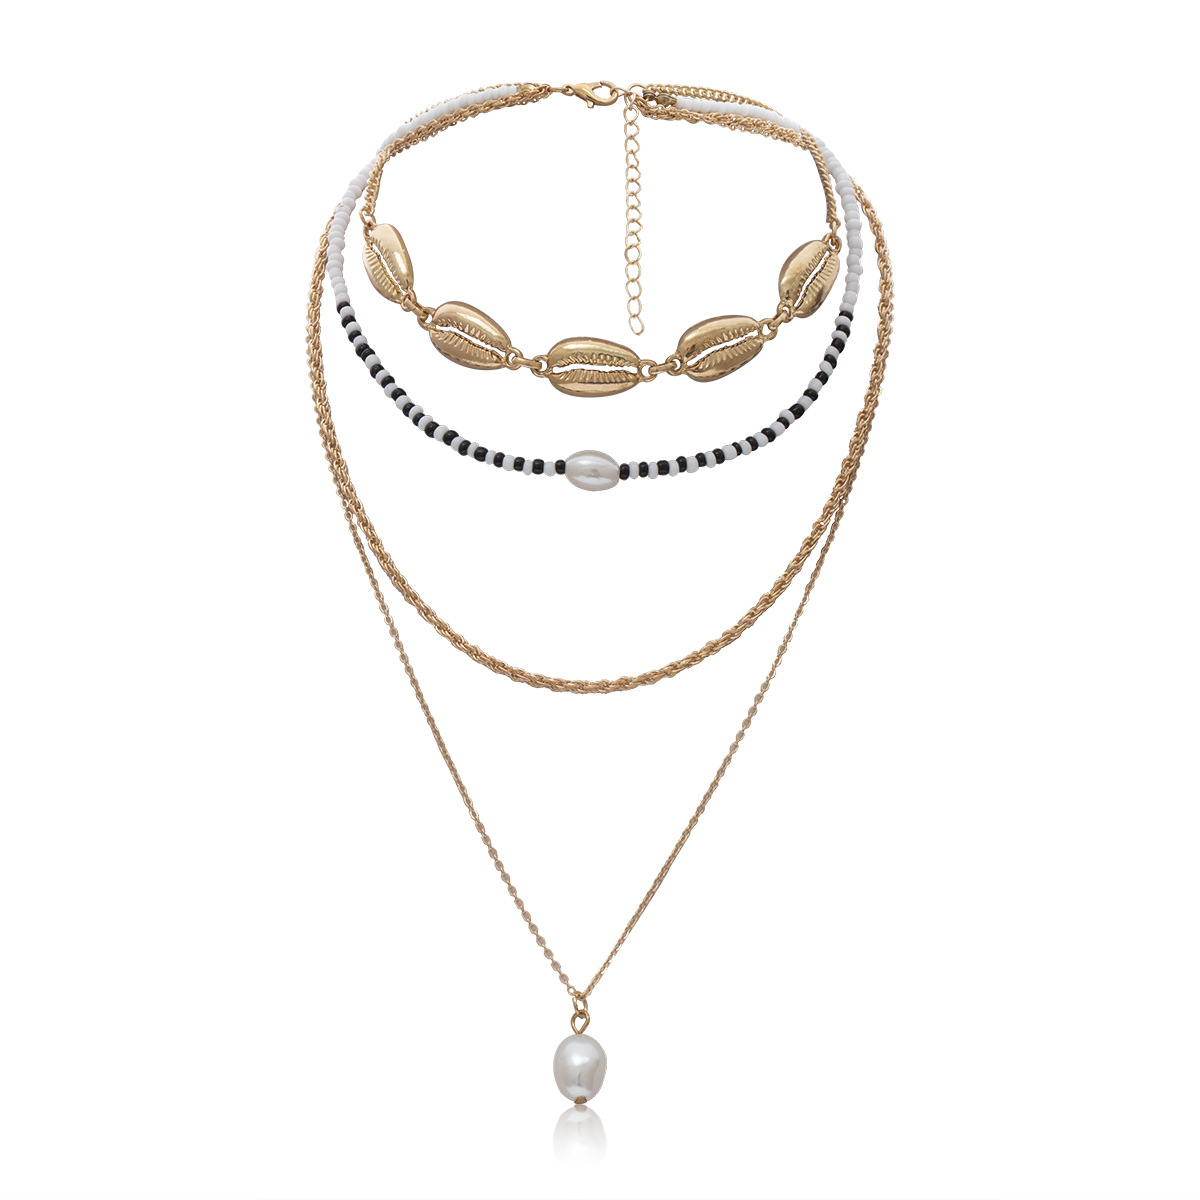 New Arrival Imitation Pearls Choker Necklaces for Women Gold Color 2019 Fashion Jewelry Natural Shell Pendant Necklace Female